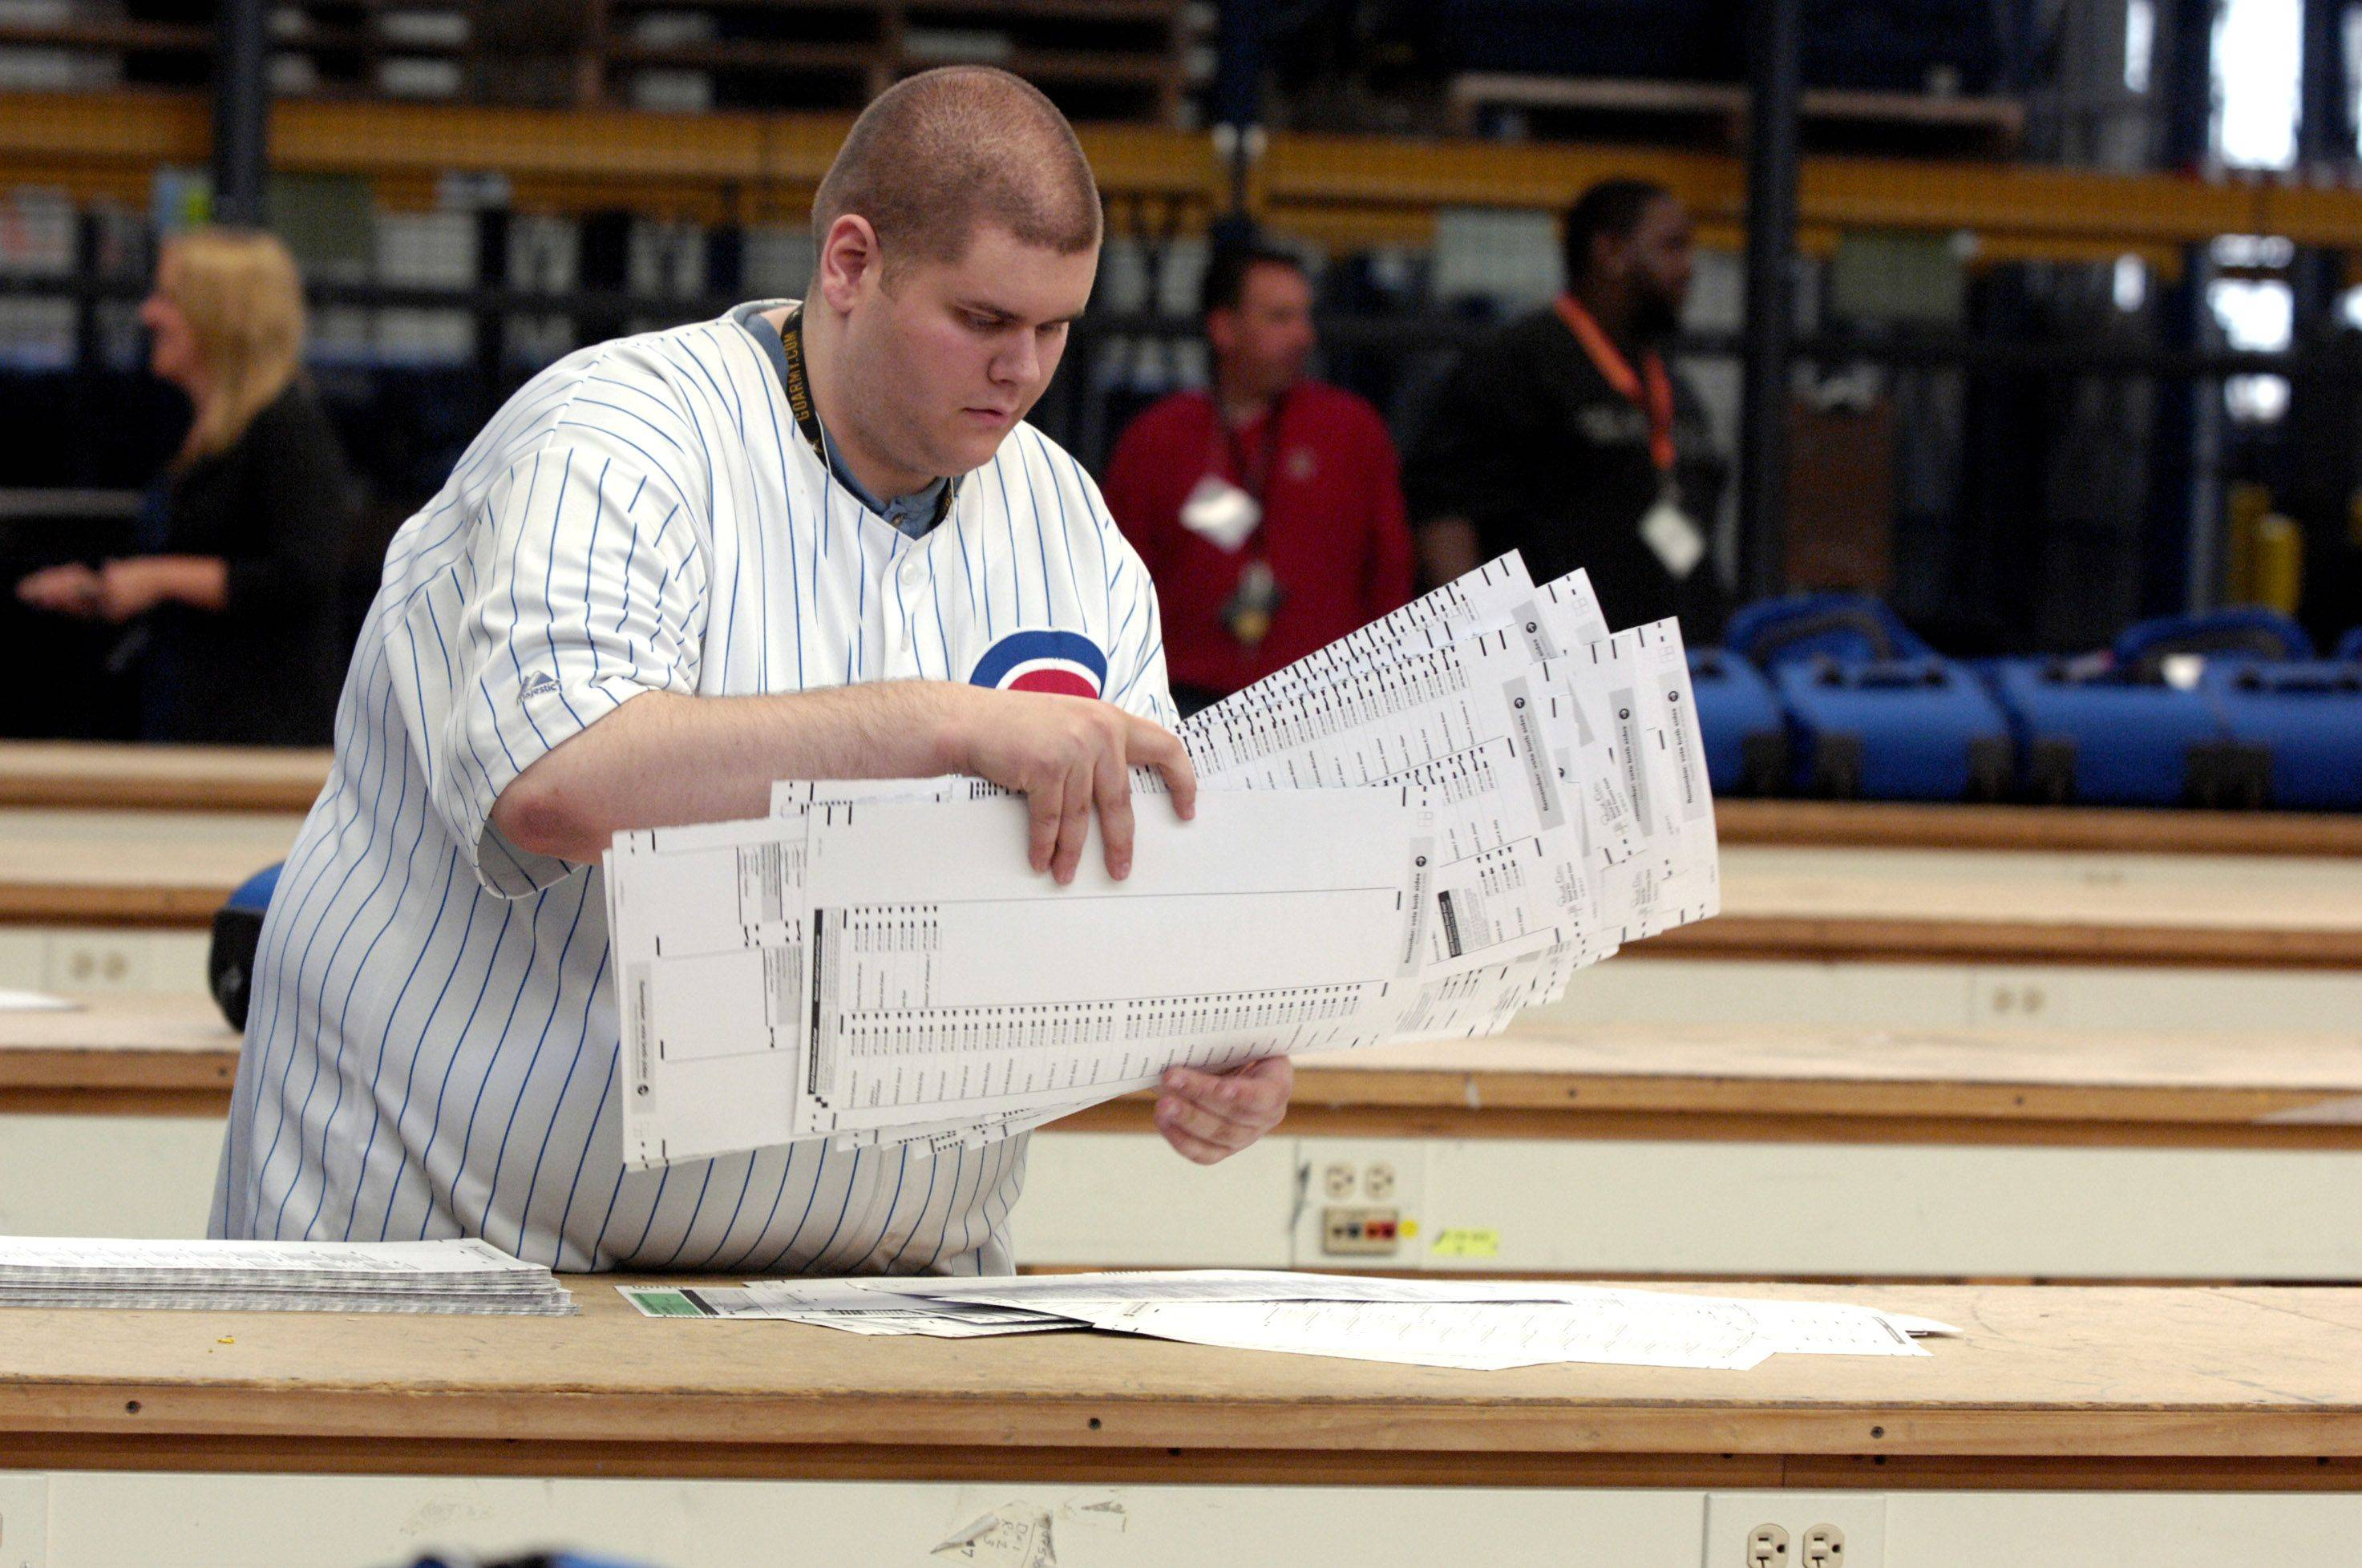 Danny Roberts stacks election ballots from Cook County before they are counted at the Cook County Clerk Election Warehouse in Chicago.